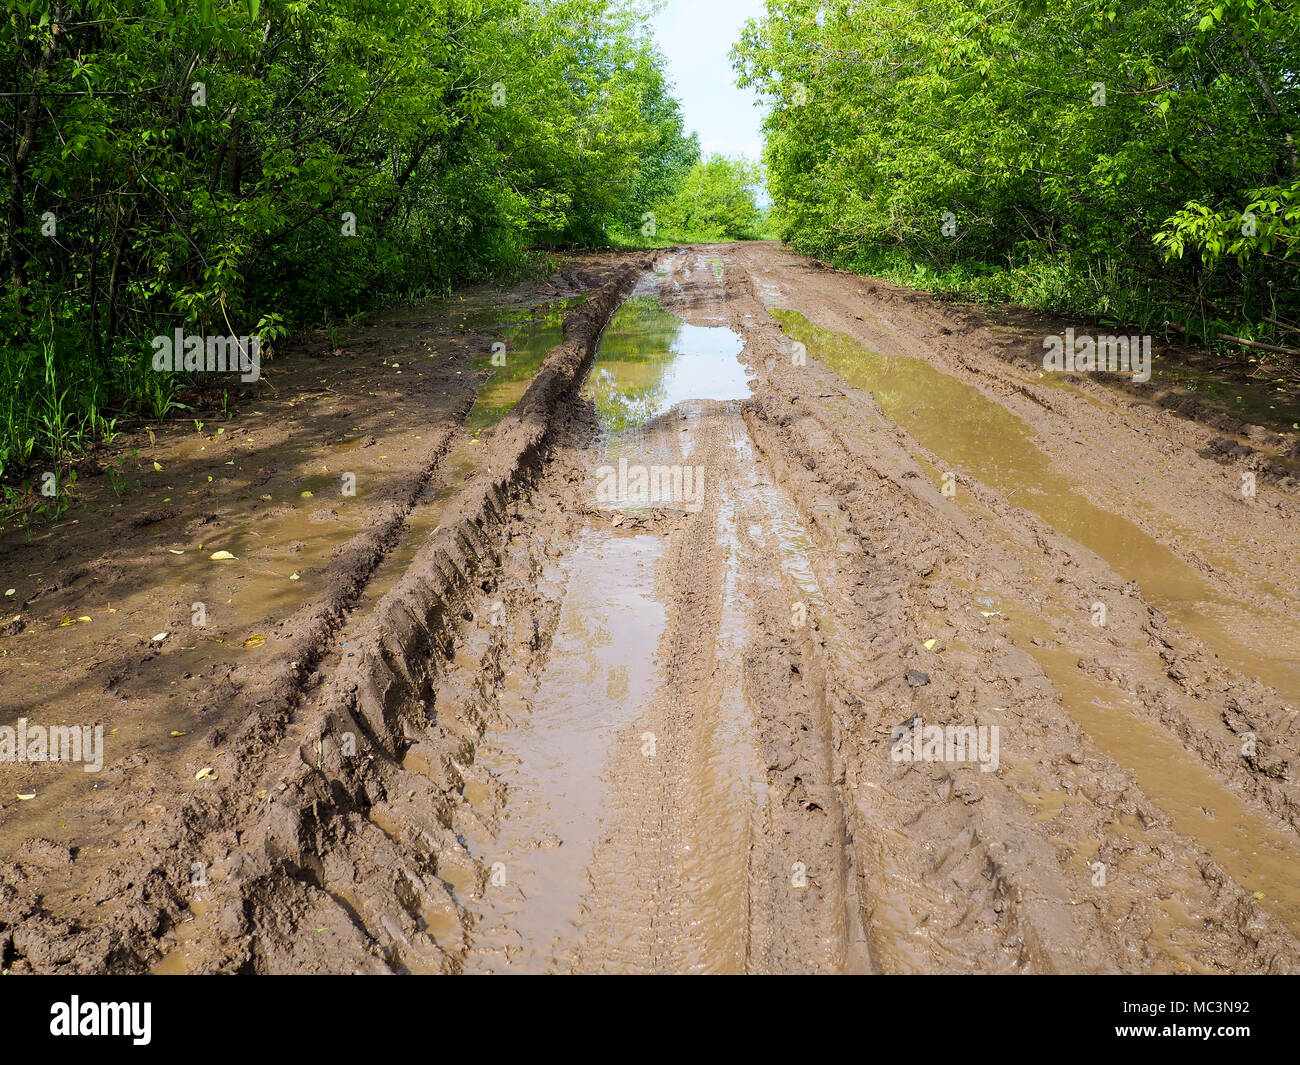 Wet muddy country road, A country road with ruts and puddles, spring Stock Photo